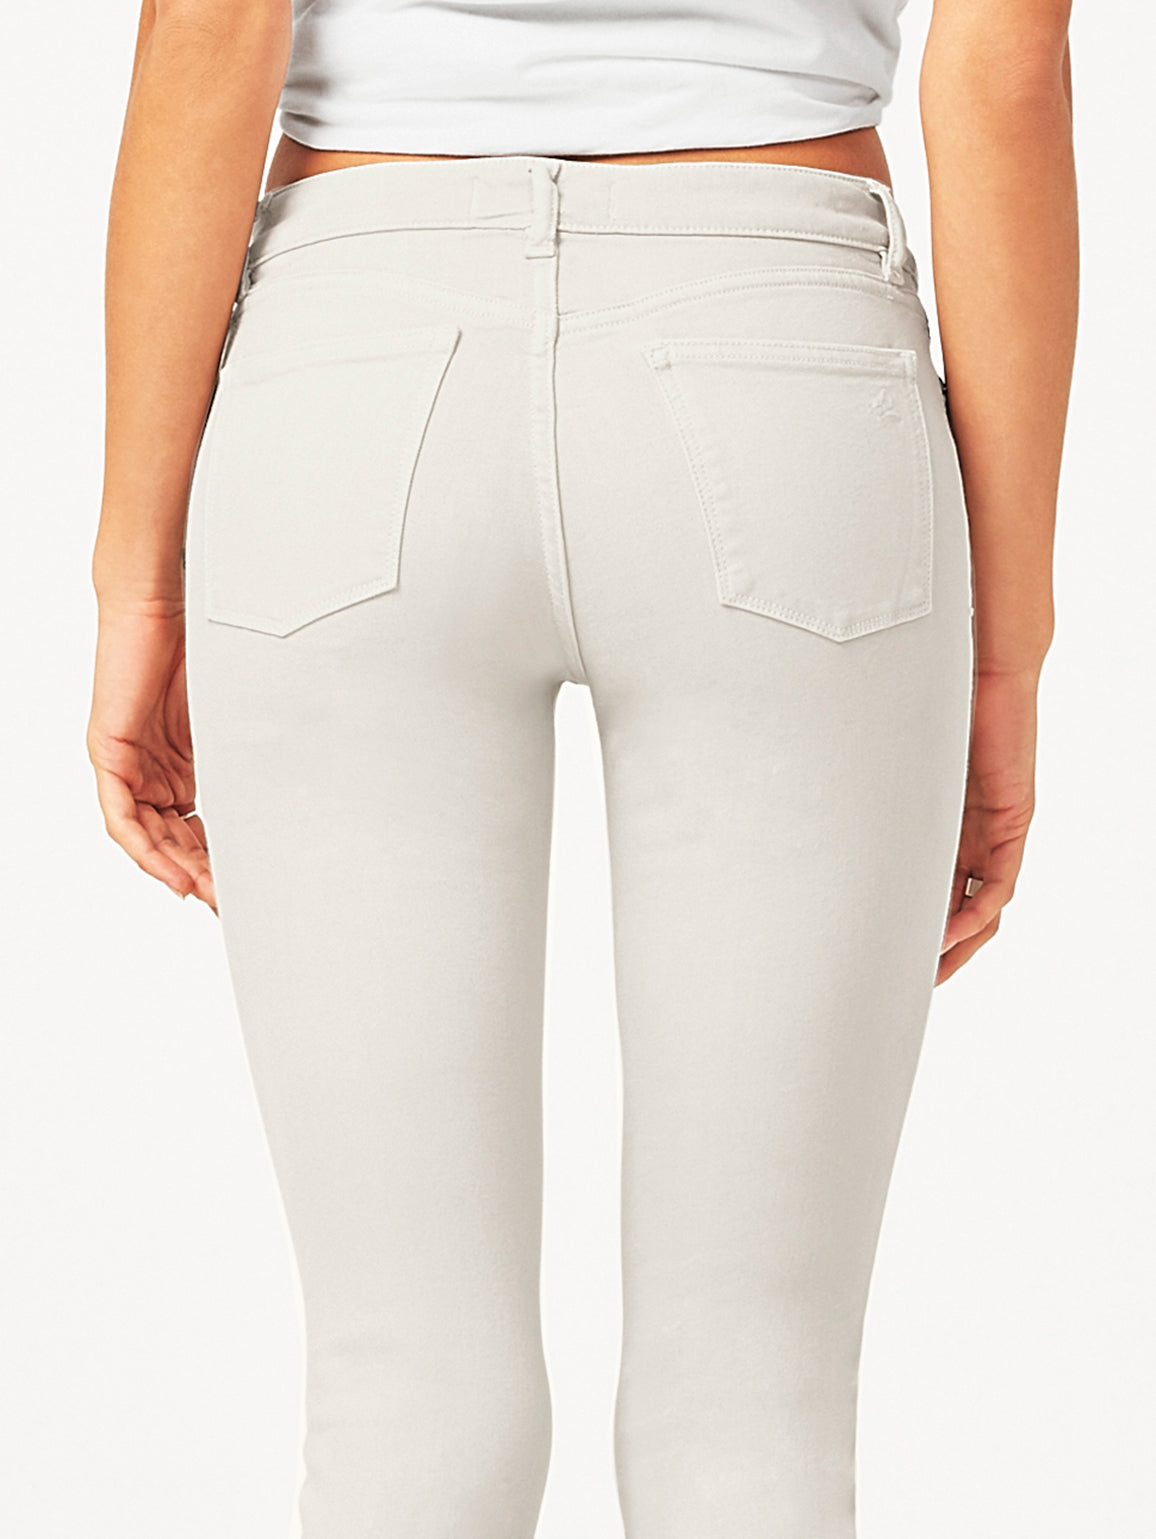 Florence Crop Mid Rise Skinny | Bone DL 1961 Denim